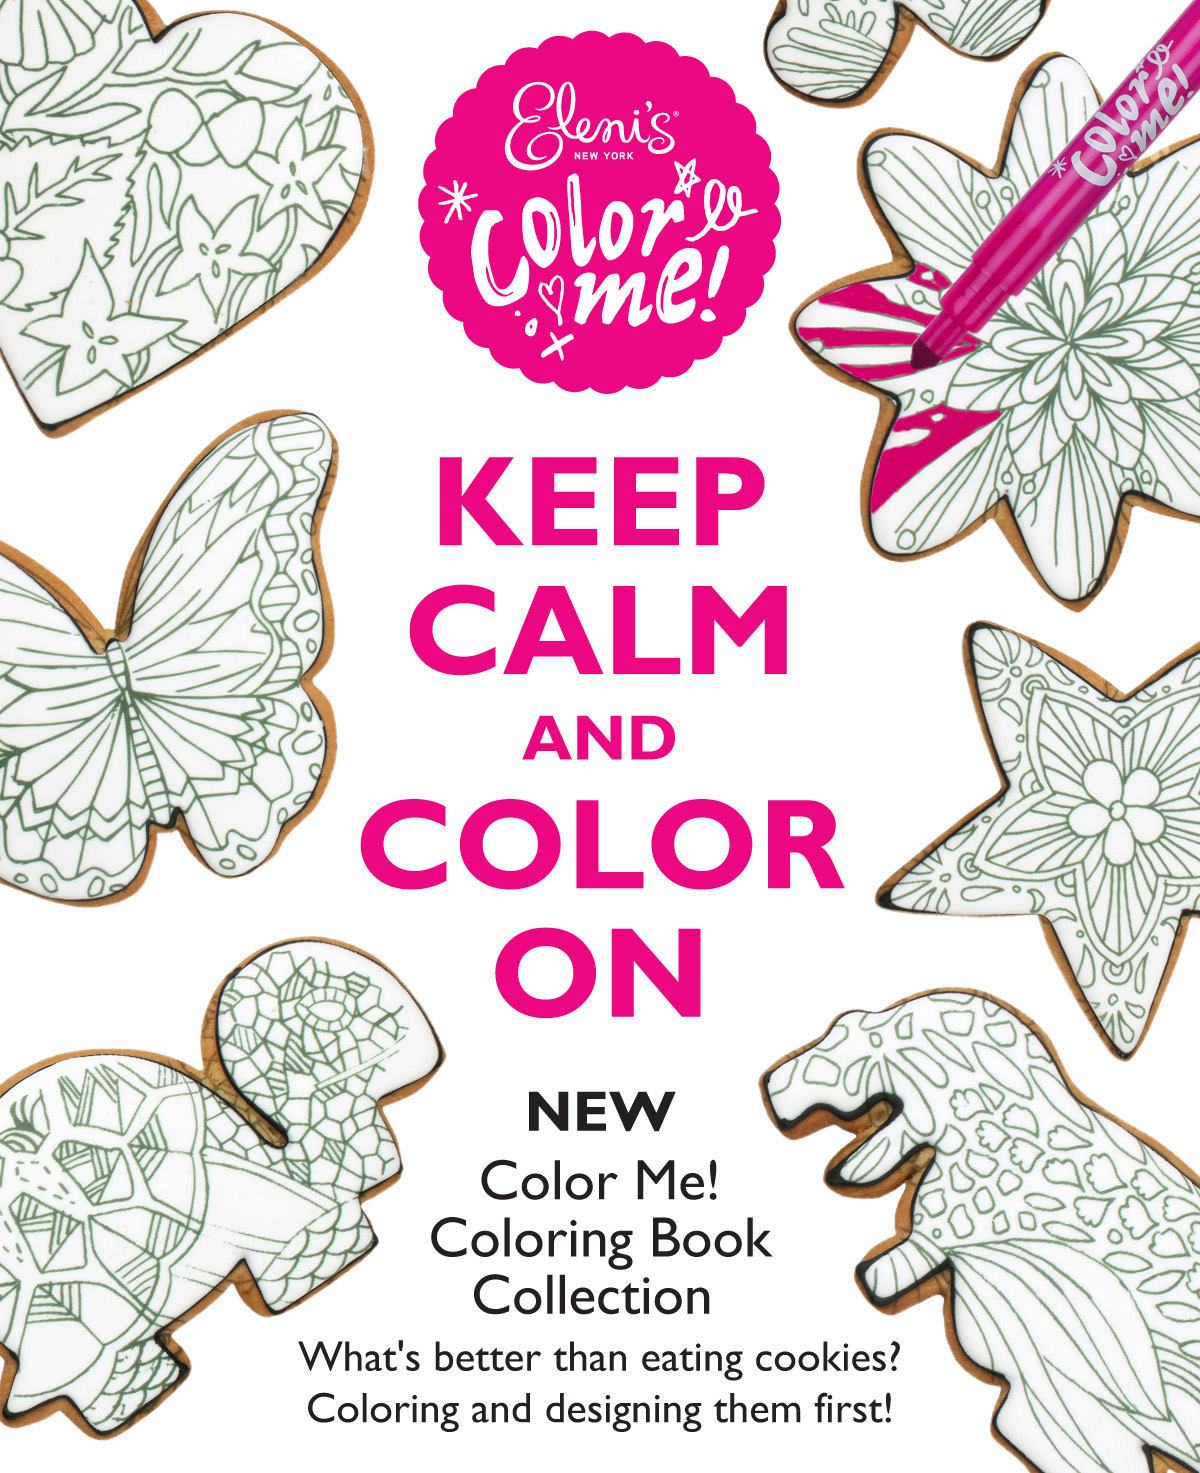 Keep Calm And Color On And Then Eat The Cookie Artwork From Elenis New York